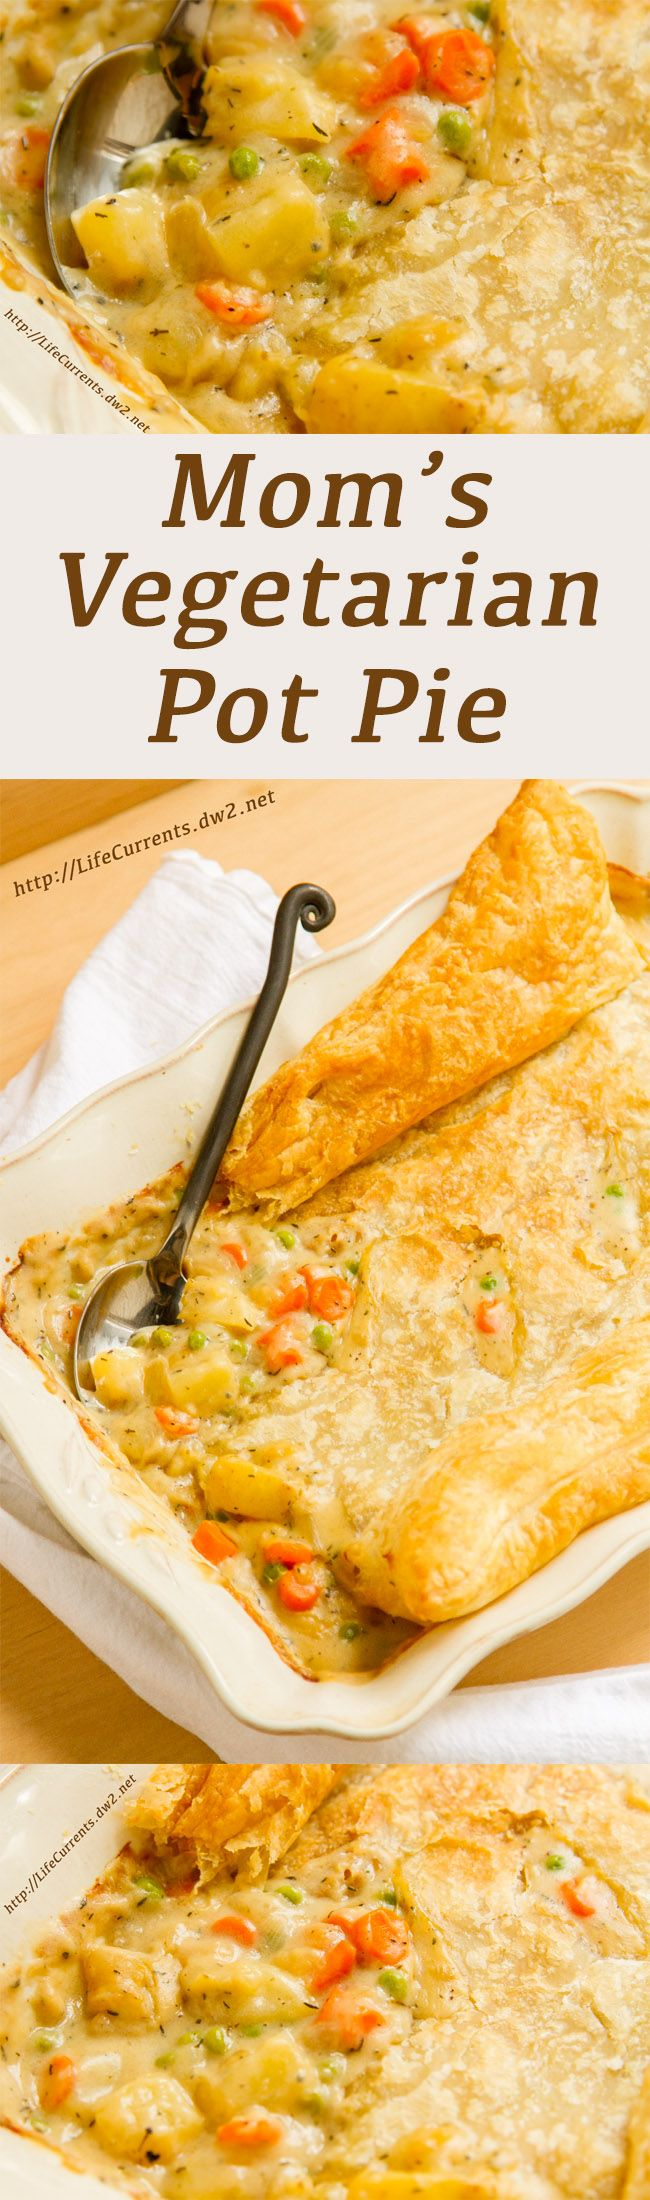 Mom's Vegetarian Pot Pie is perfect comfort food that's filled with flavor and lots of veggies - perfect for any family gathering, or just because you'll LOVE it!